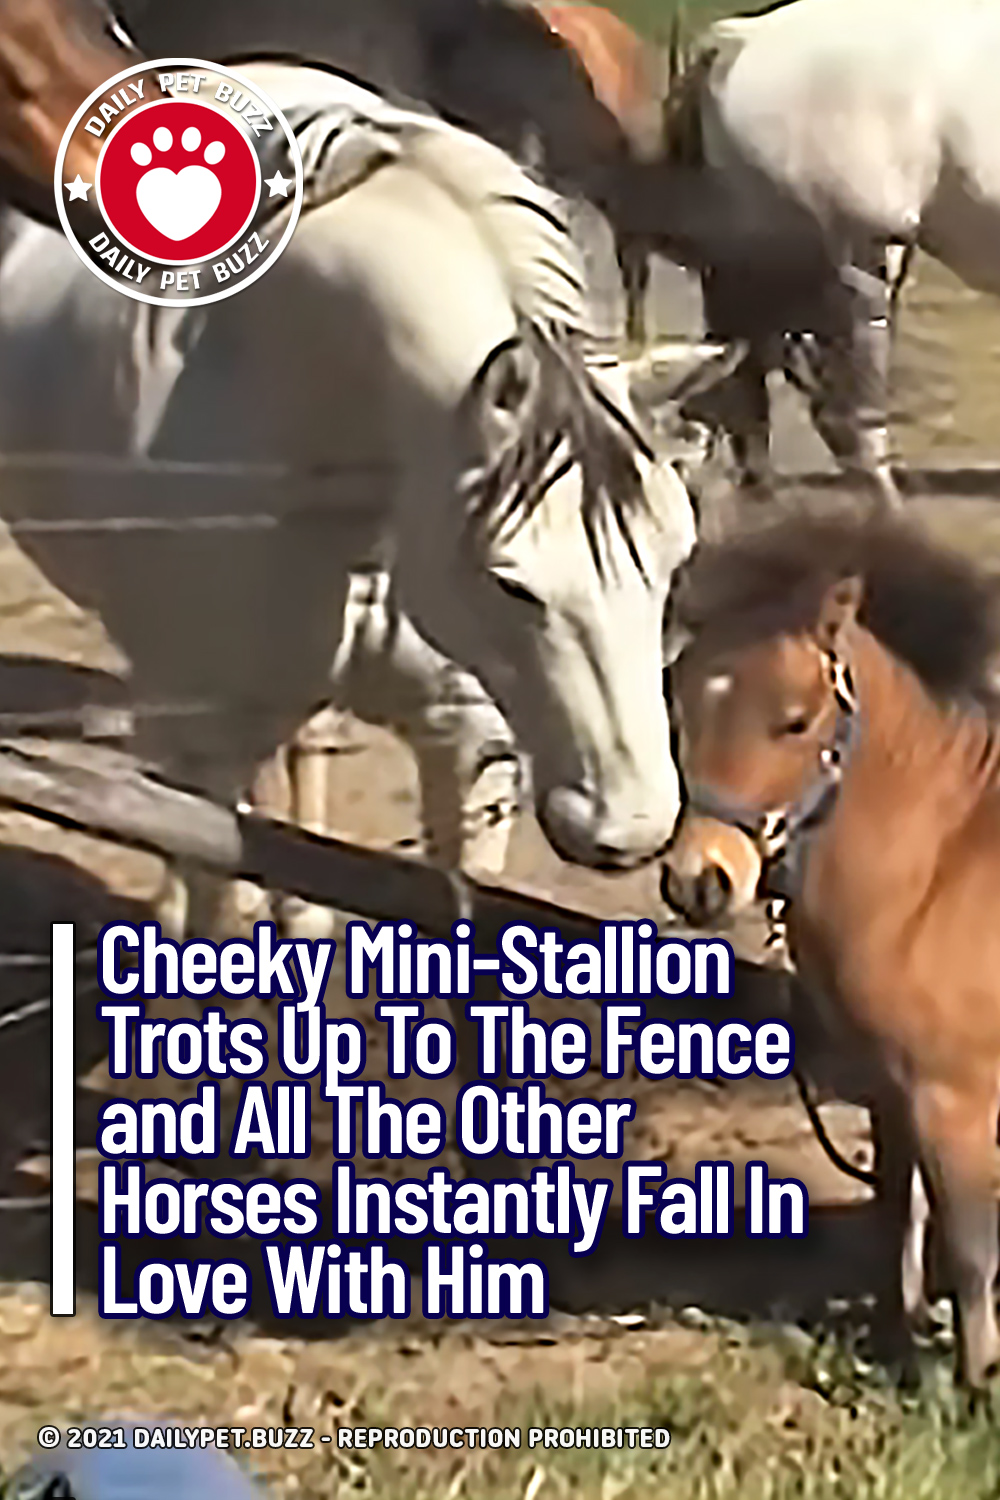 Cheeky Mini-Stallion Trots Up To The Fence and All The Horses Fall In Love With Him